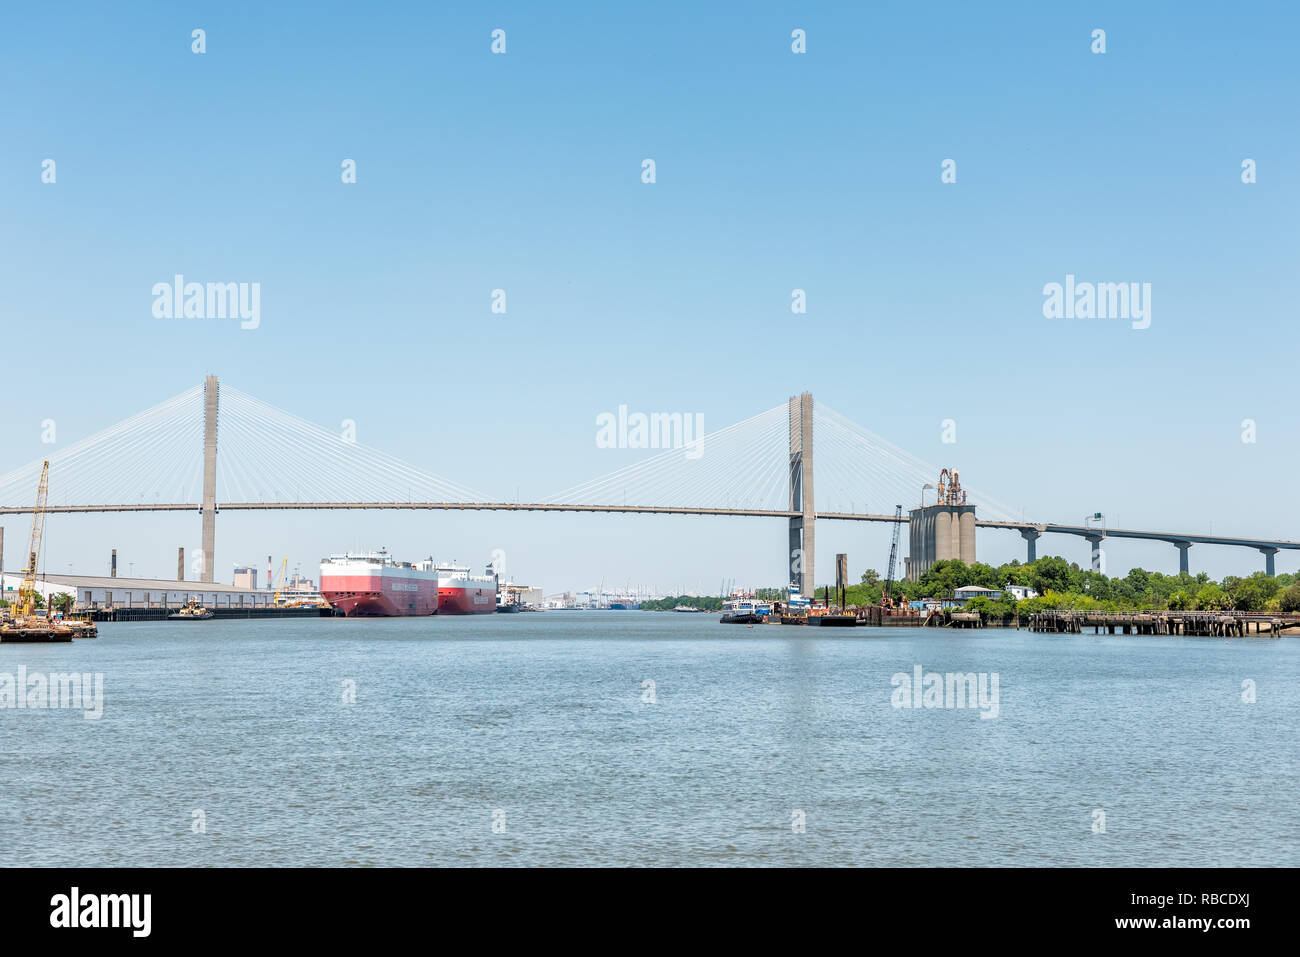 Savannah, USA - May 11, 2018: Old town River in Georgia famous southern town with panoramic view of Talmadge Memorial Bridge during day - Stock Image